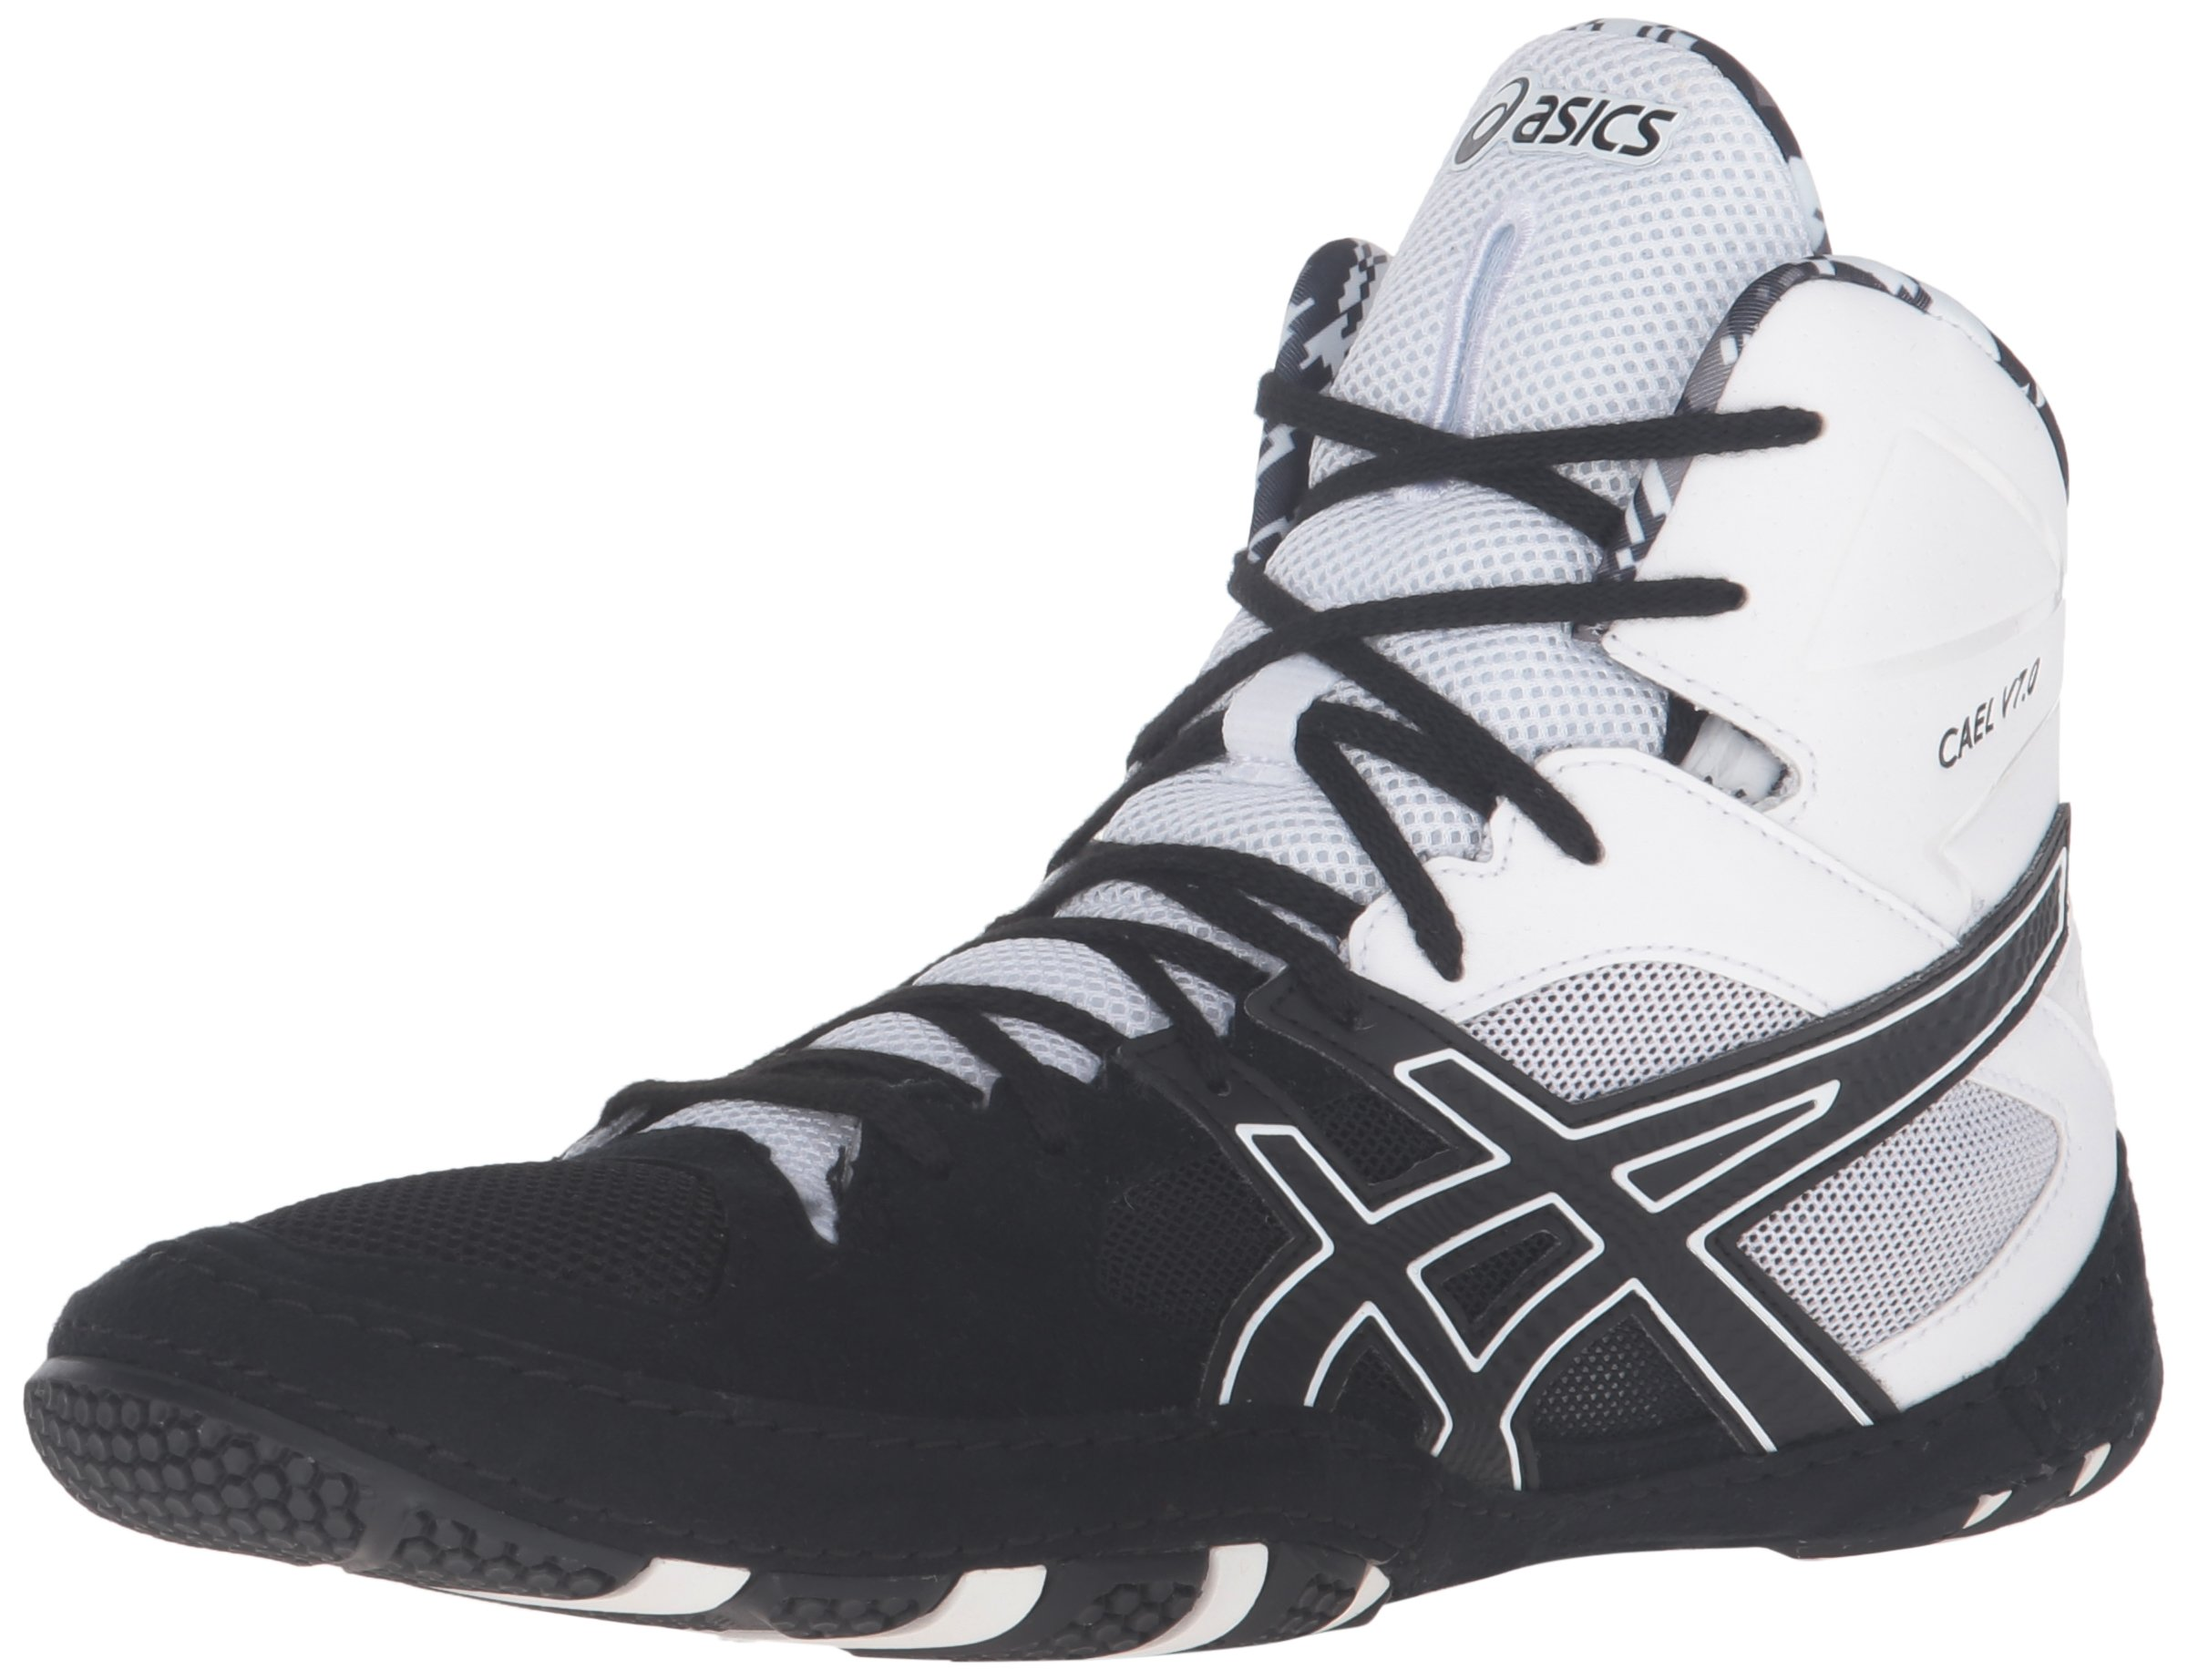 ASICS Men's Cael V7.0 Wrestling Shoe, Black/Onyx/White, 9.5 M US by ASICS